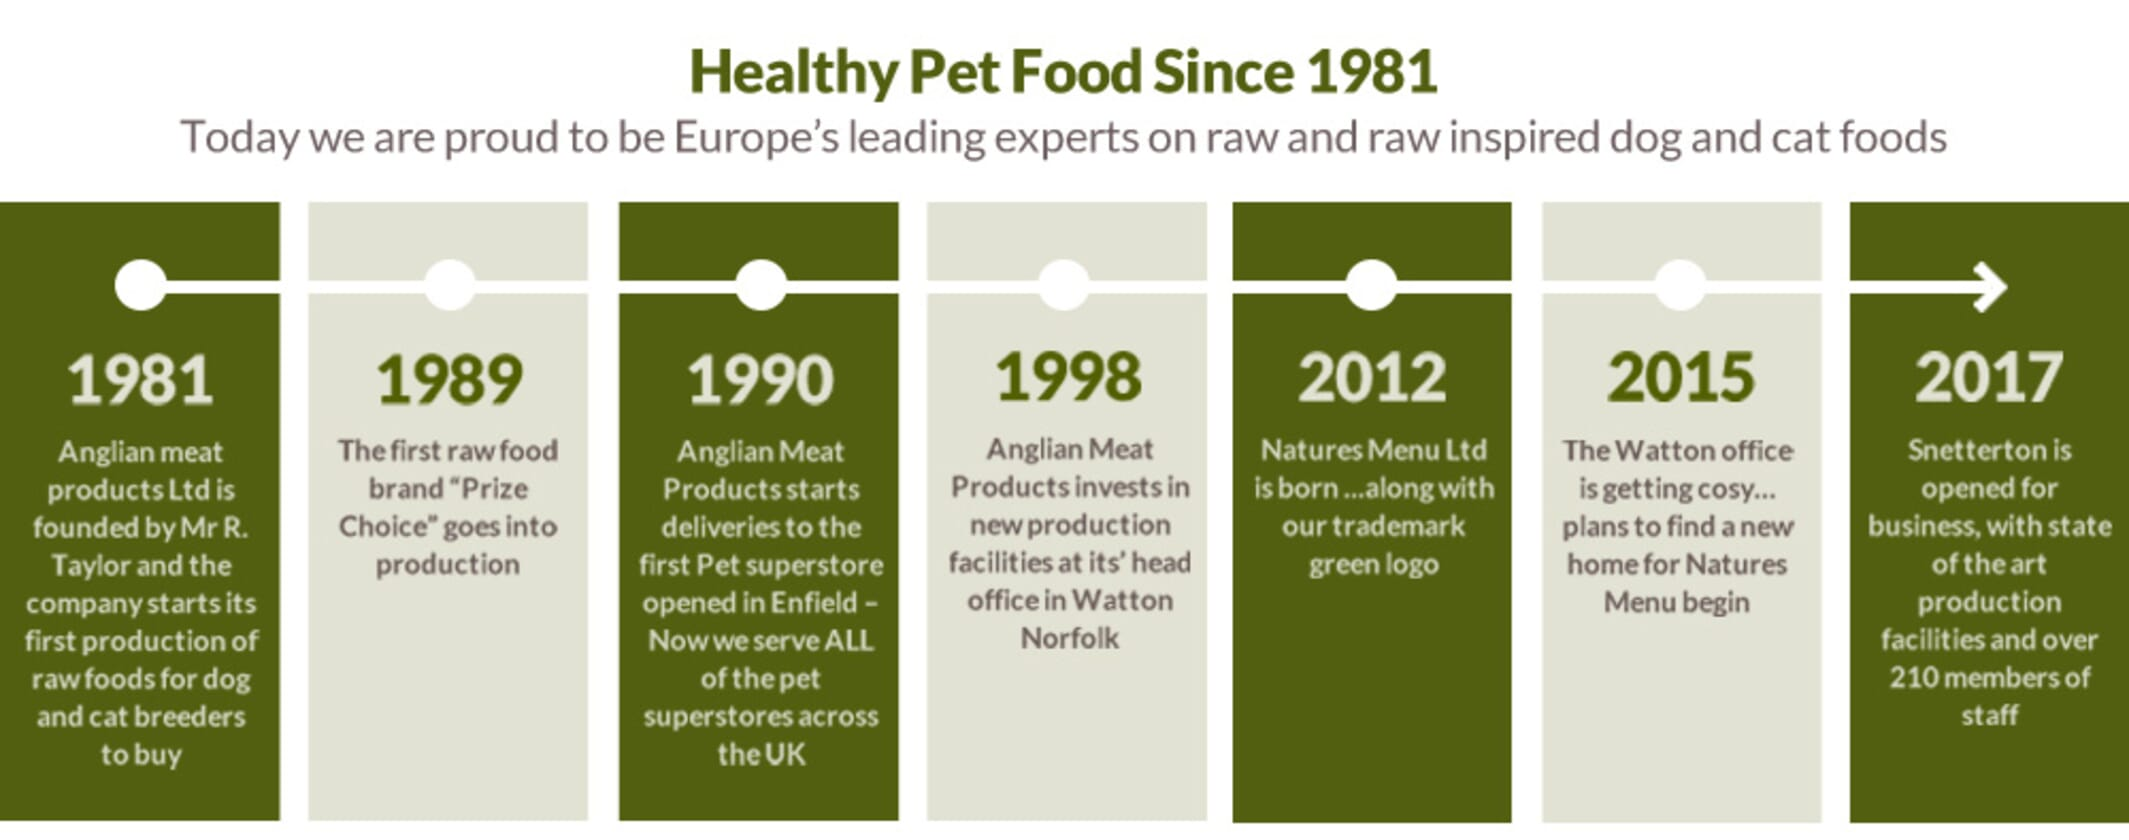 Healthy Pet Food Since 1981